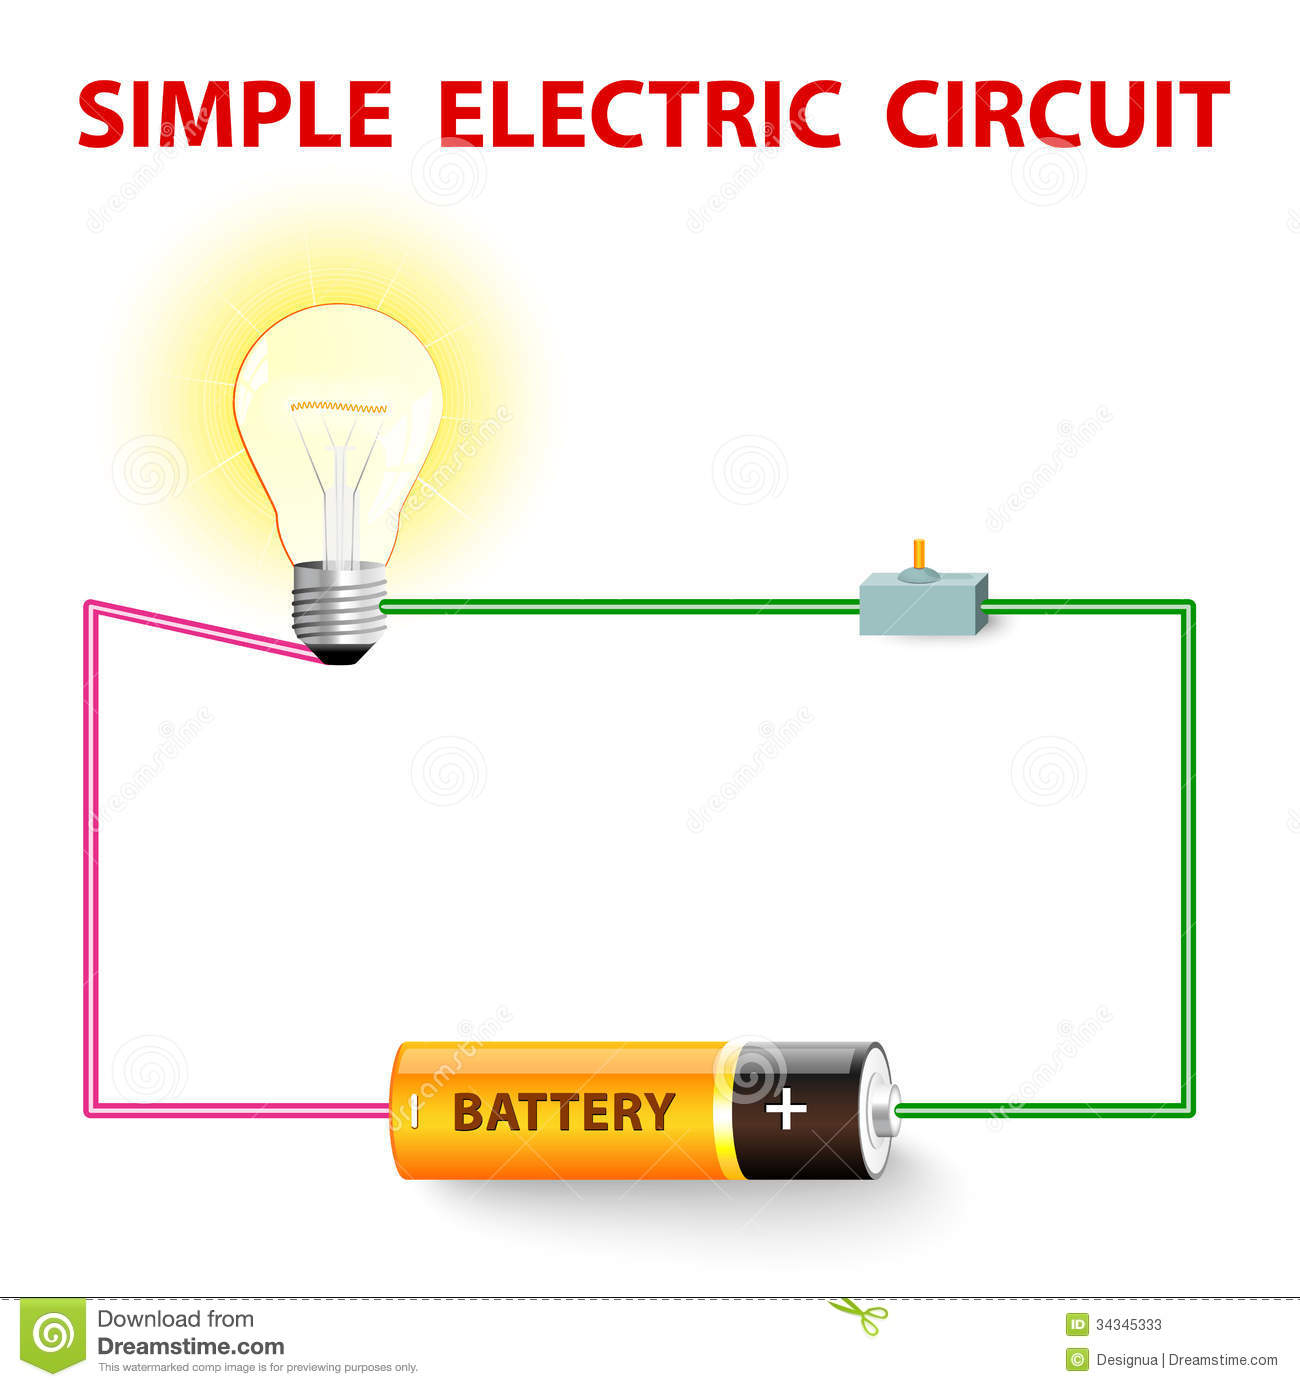 A simple electric circuit stock vector. Illustration of closed ...